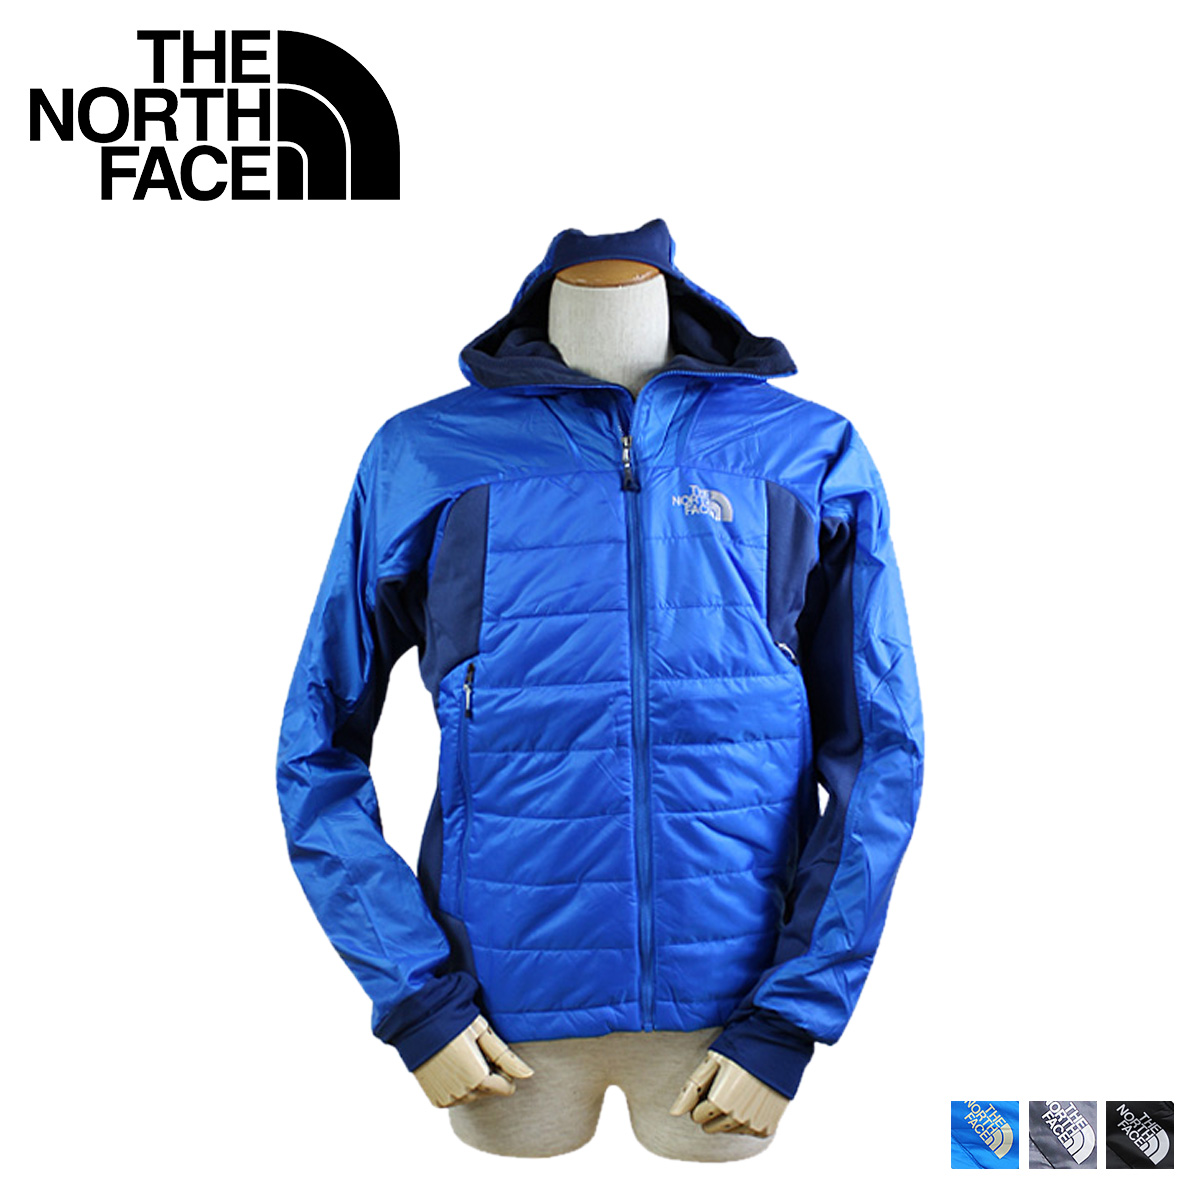 The MEN's SUPER ZEPHYRUS HOODIE mens, North face THE NORTH FACE zip up jacket 3 colors A0QP [regular]